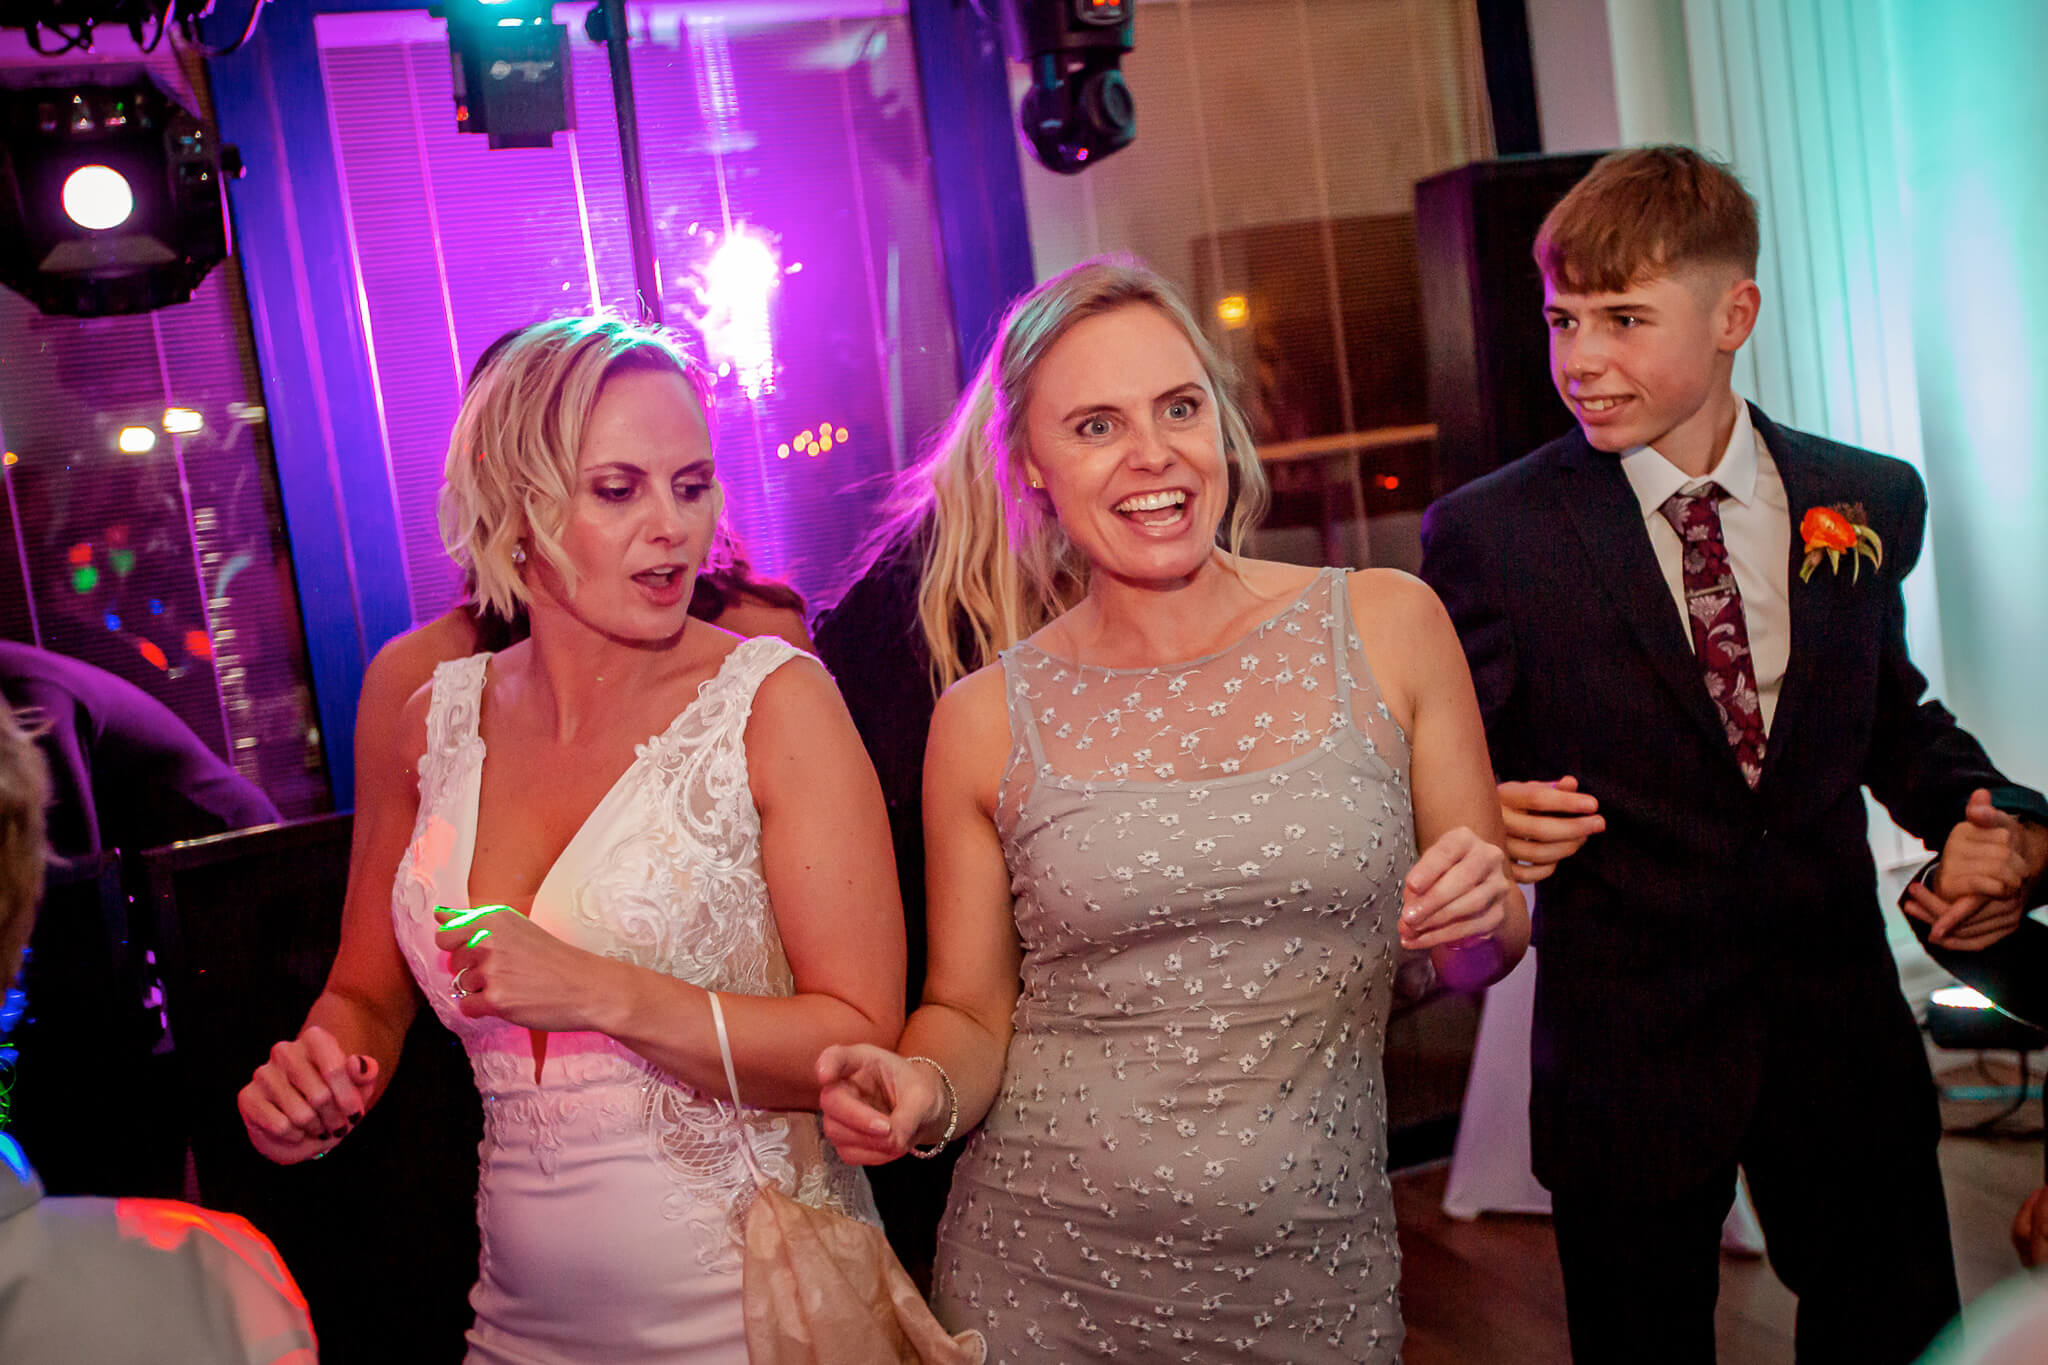 wedding-reception-dancing-st-johns-litchfield-stanbury-photography